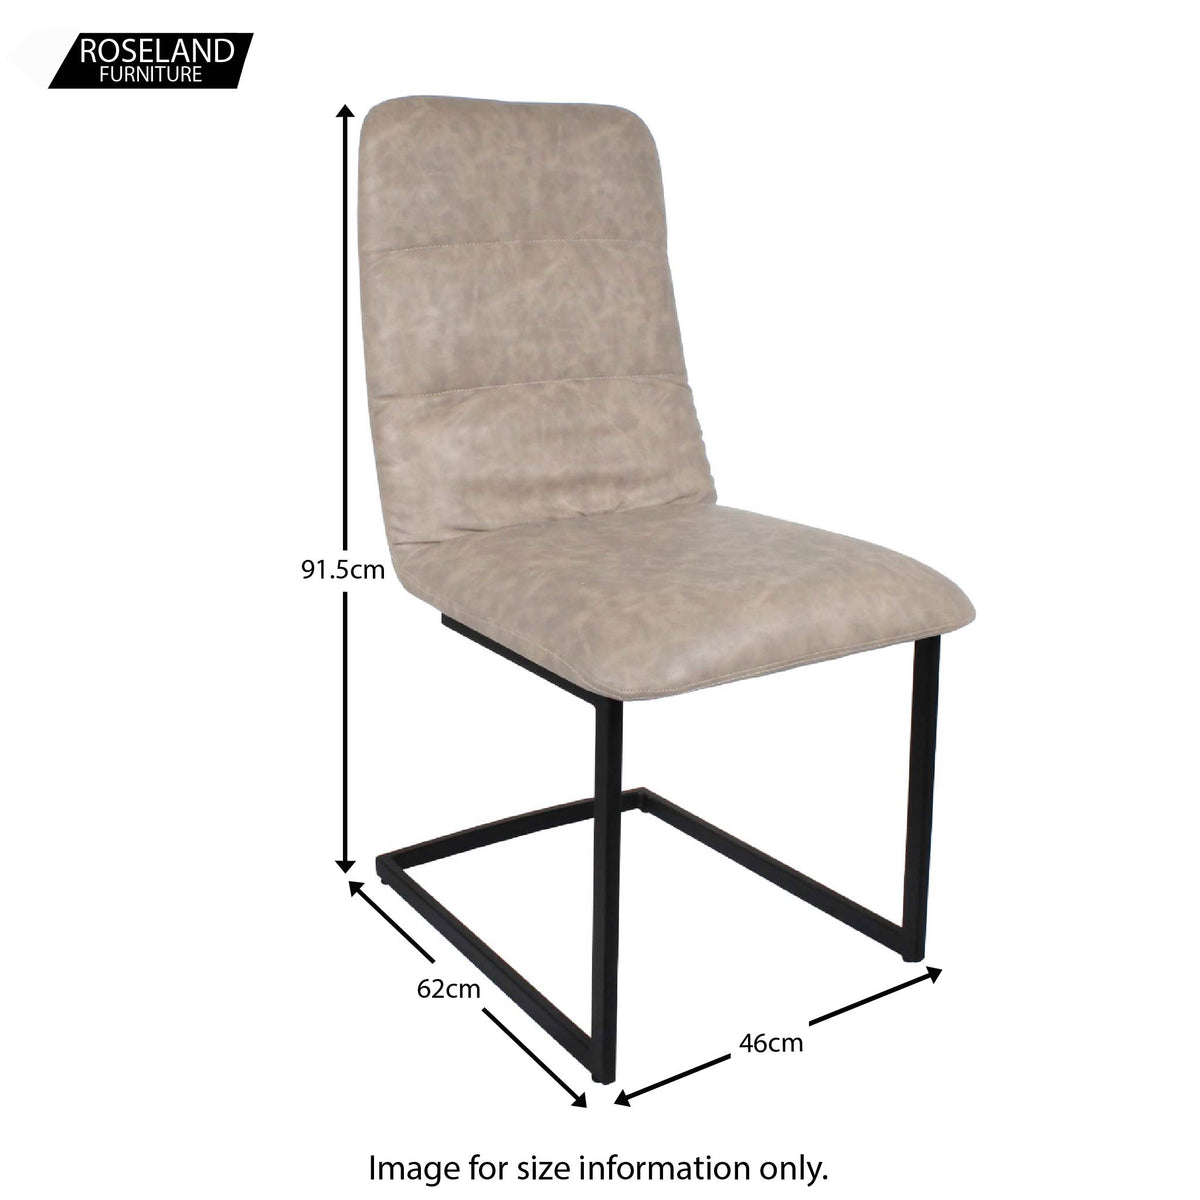 Dimensions for Mottled Elk Maitland Faux Leather Dining Chair by Roseland Furniture